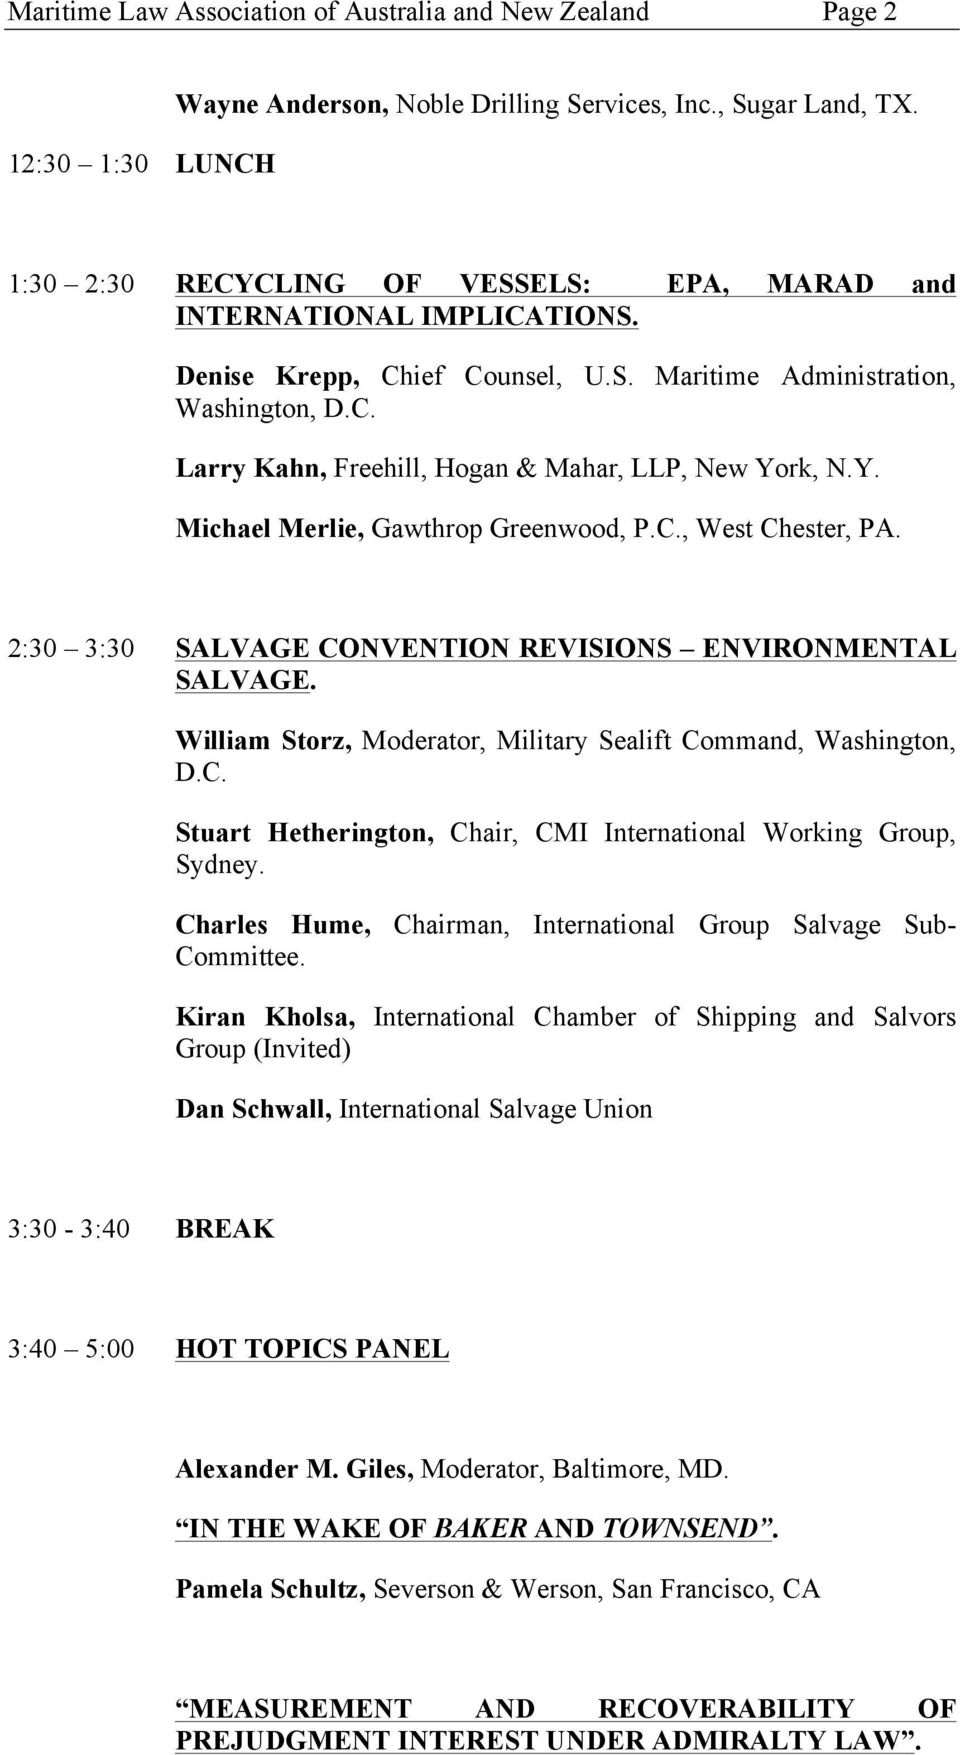 Y. Michael Merlie, Gawthrop Greenwood, P.C., West Chester, PA. 2:30 3:30 SALVAGE CONVENTION REVISIONS ENVIRONMENTAL SALVAGE. William Storz, Moderator, Military Sealift Command, Washington, D.C. Stuart Hetherington, Chair, CMI International Working Group, Sydney.